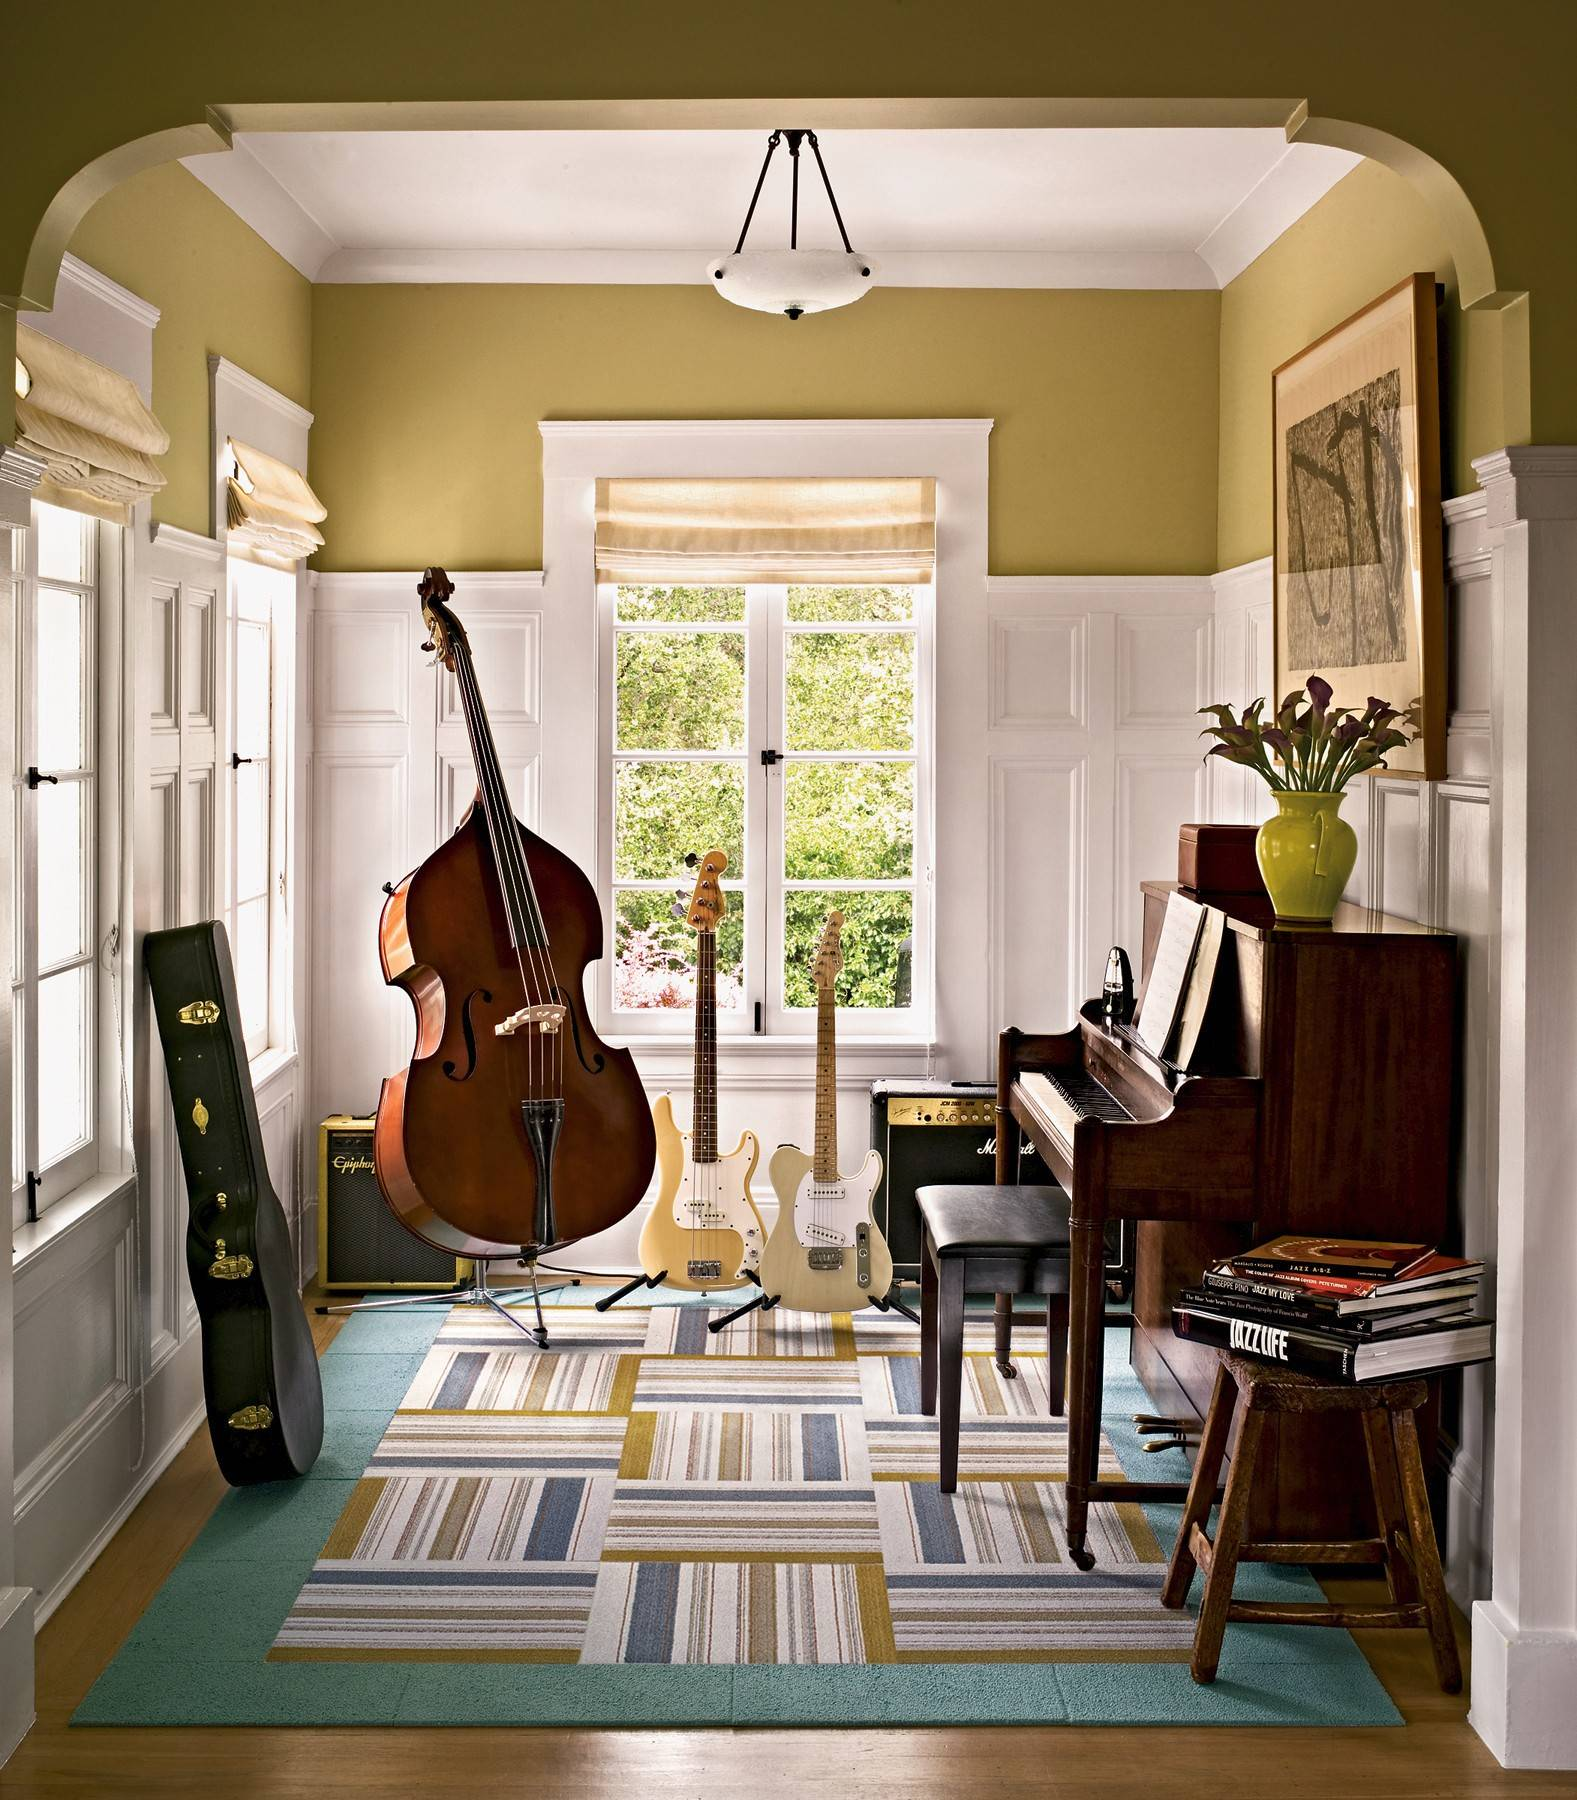 In older homes, space often must be repurposed. This front parlor was made into a music room.